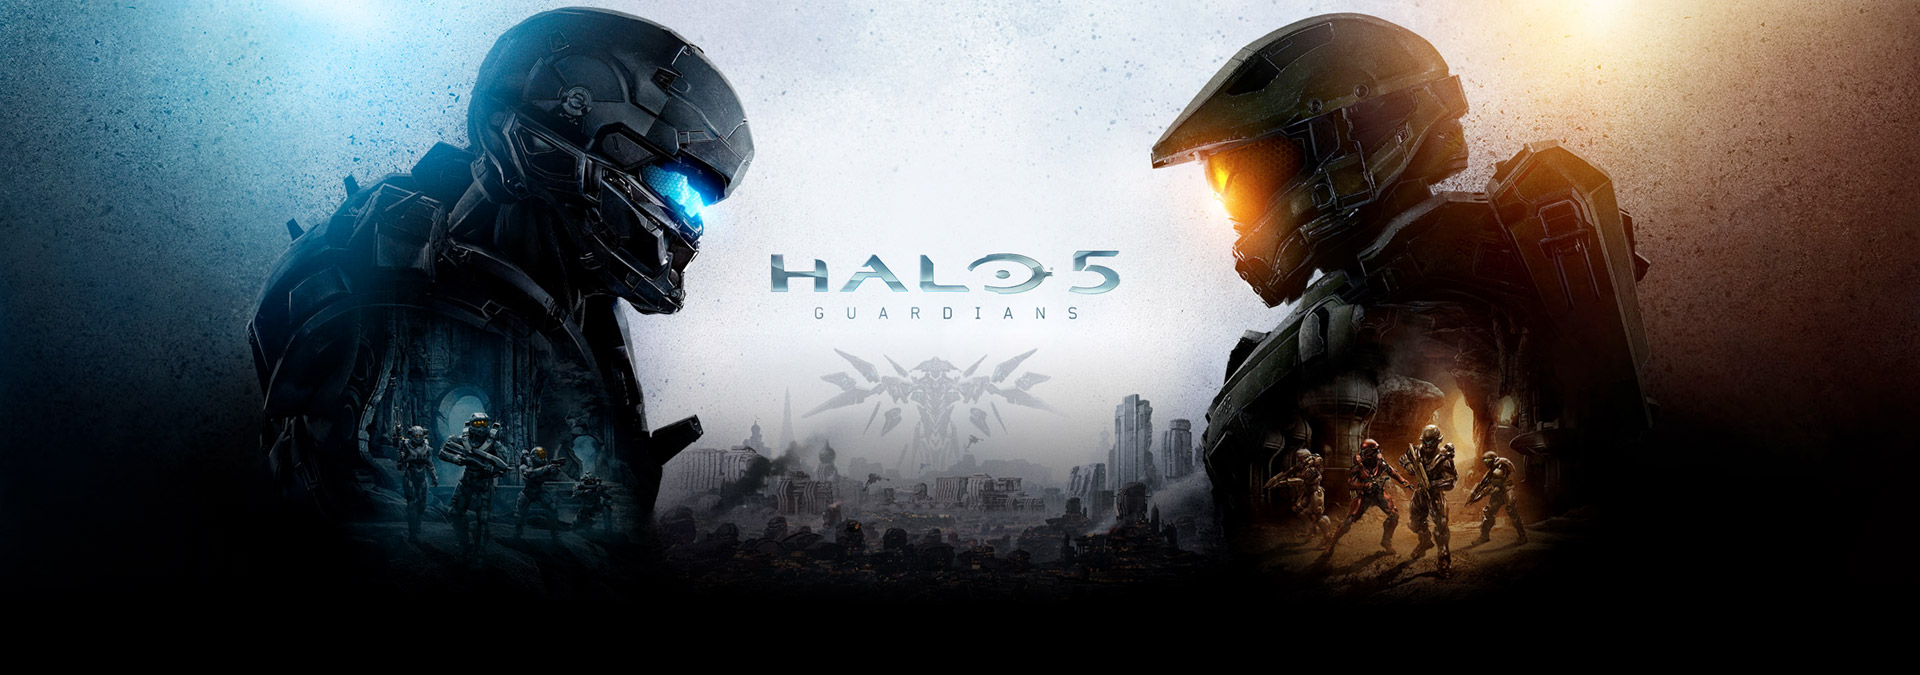 Halo 5: Guardians Gameplay Video | GameGrin